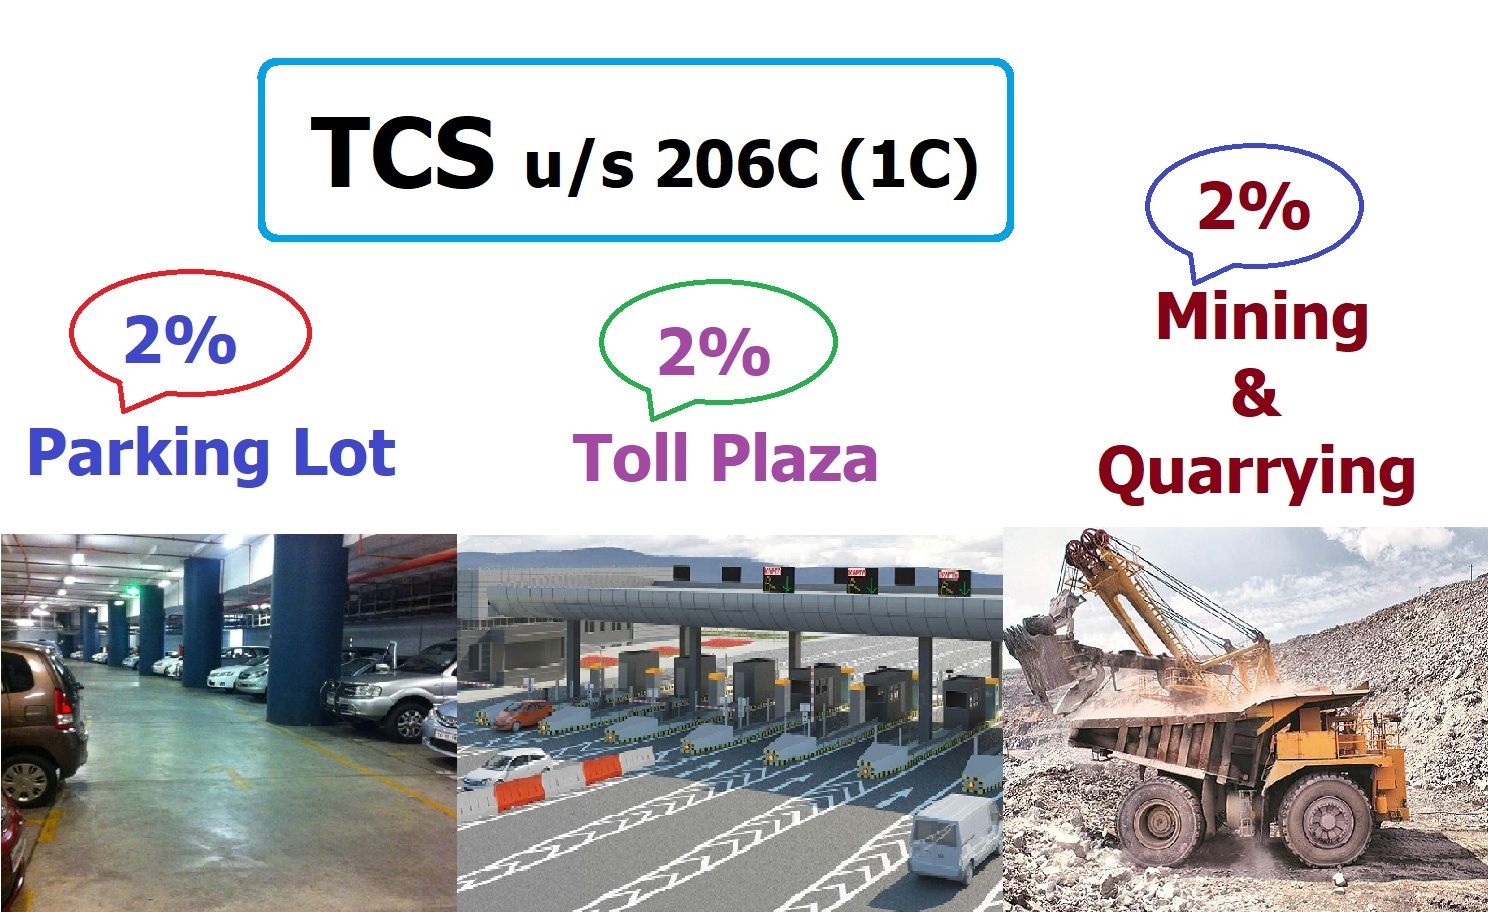 TCS in case of Parking lot, Toll plaza, Mining and quarrying